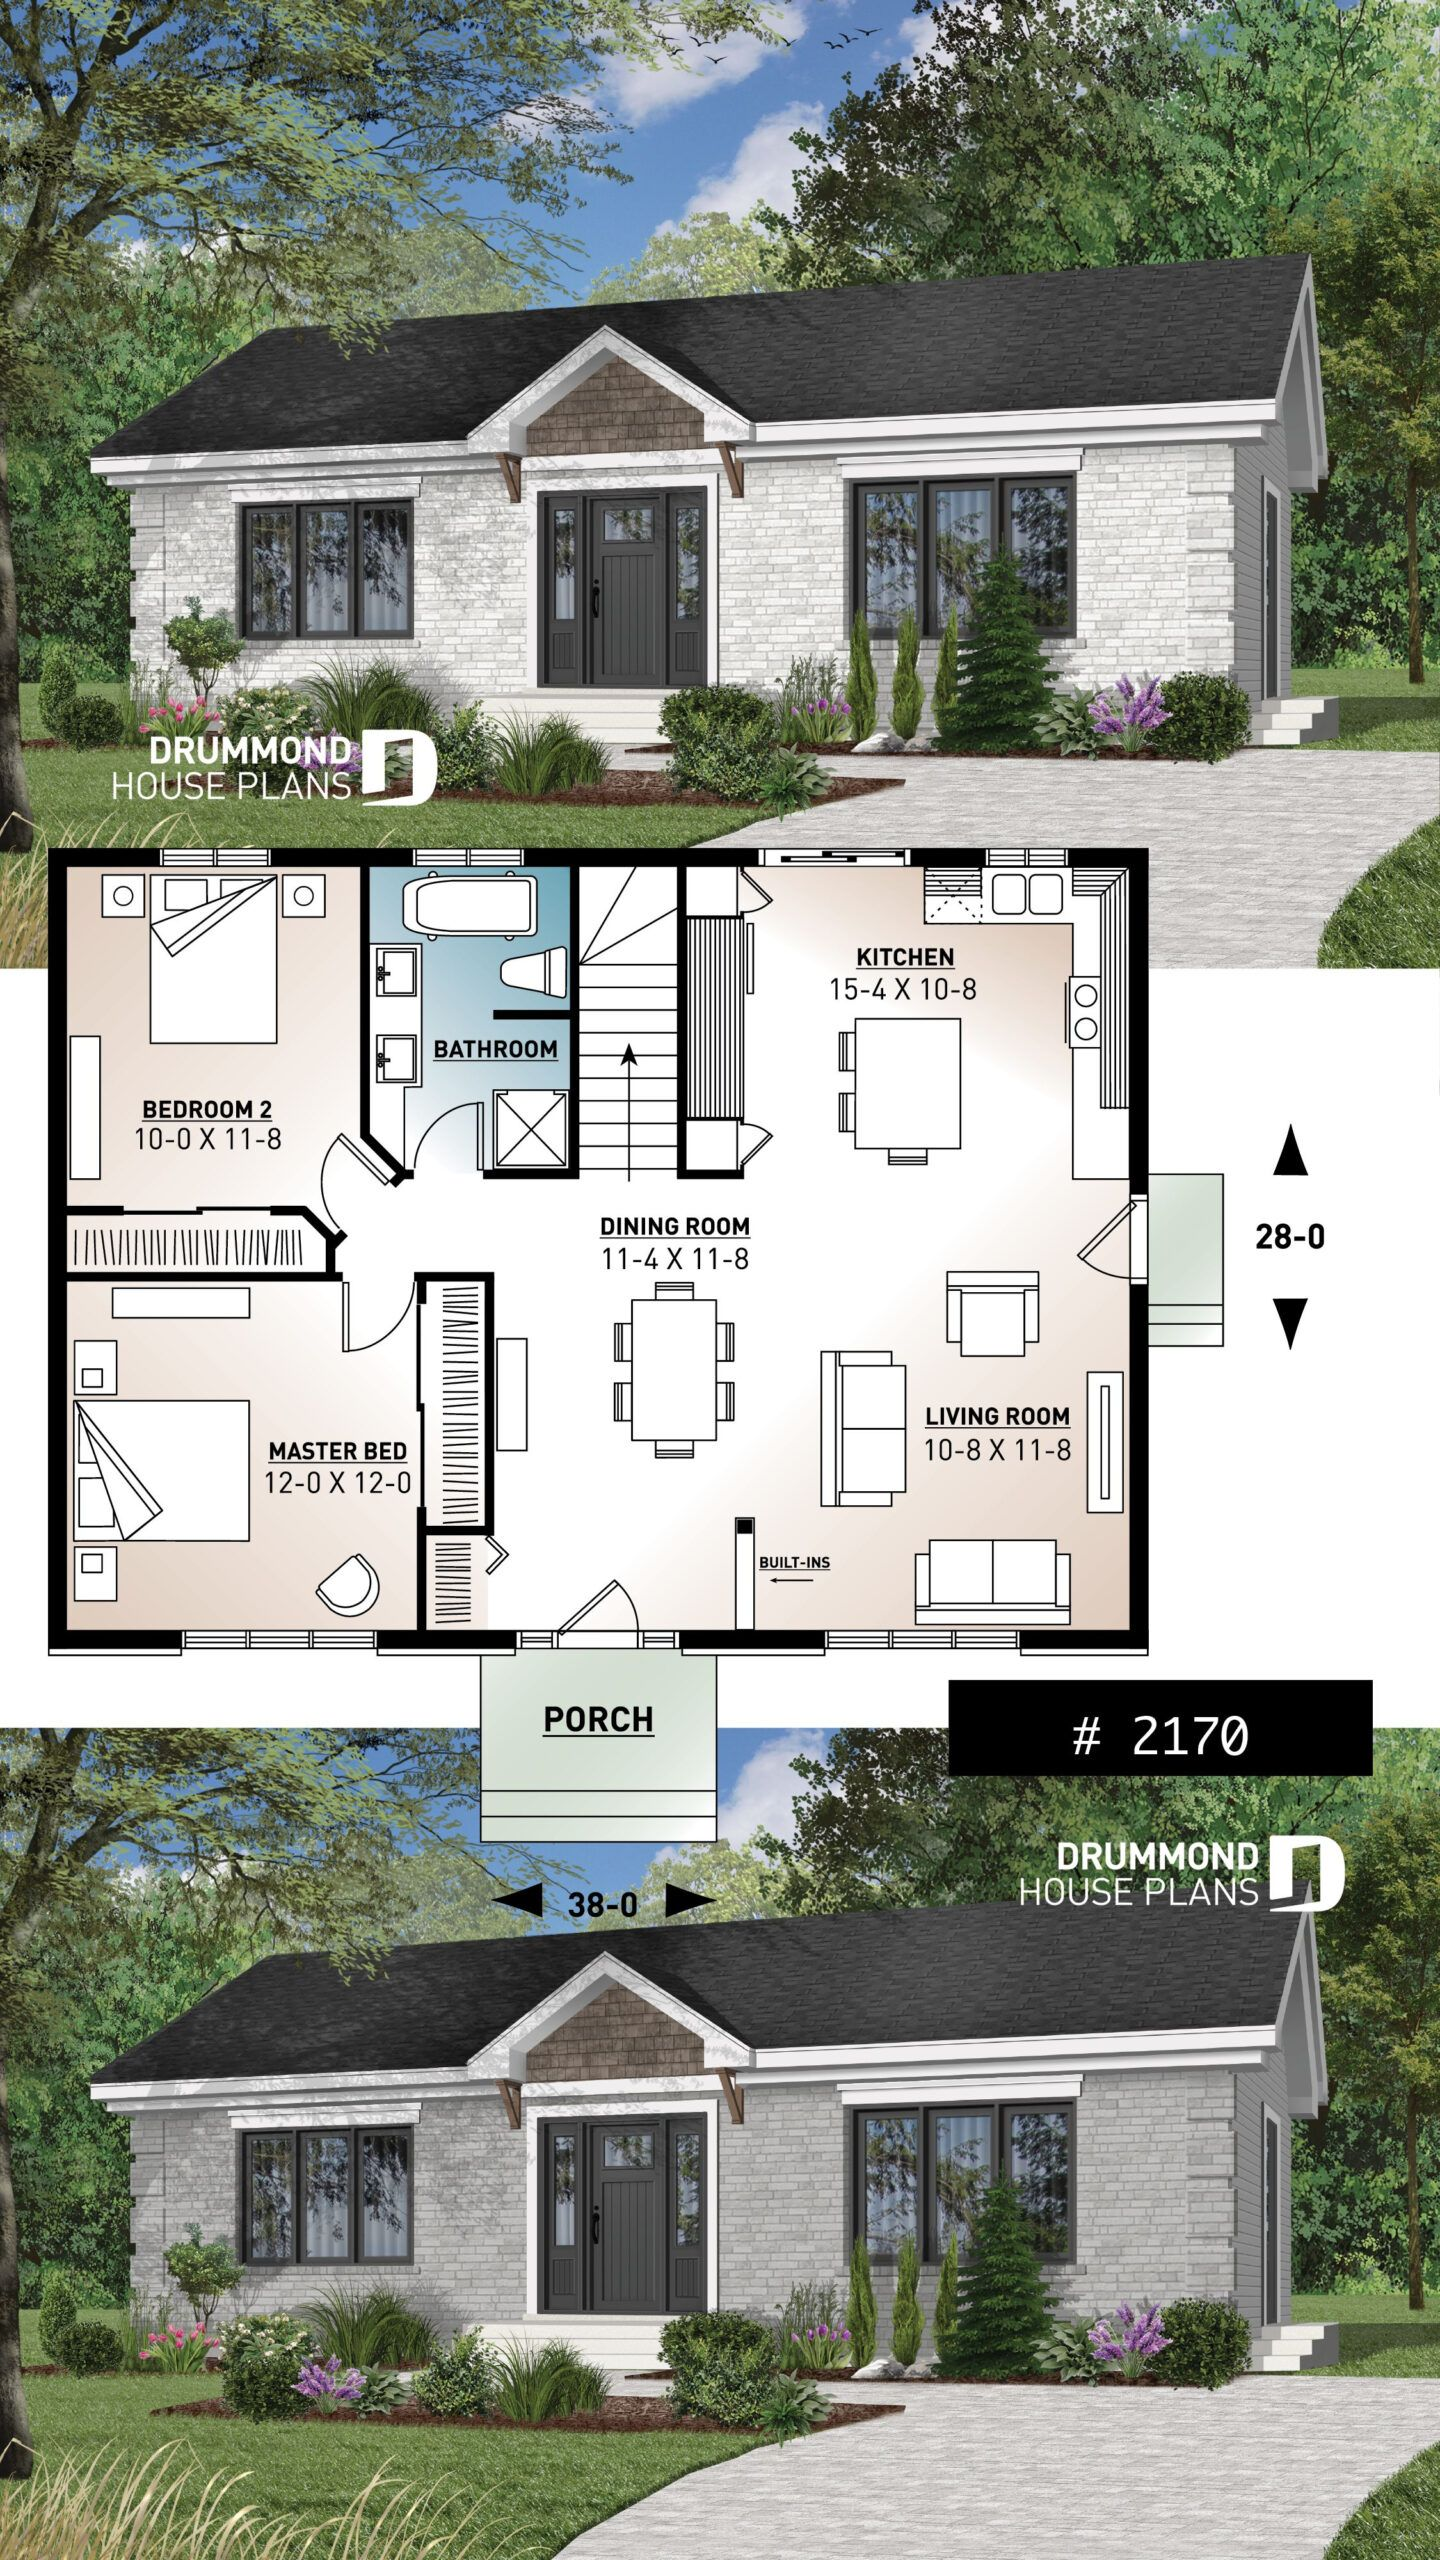 Small Daylight Basement House Plans In 2020 Sims House Plans Basement House Plans Bungalow House Plans